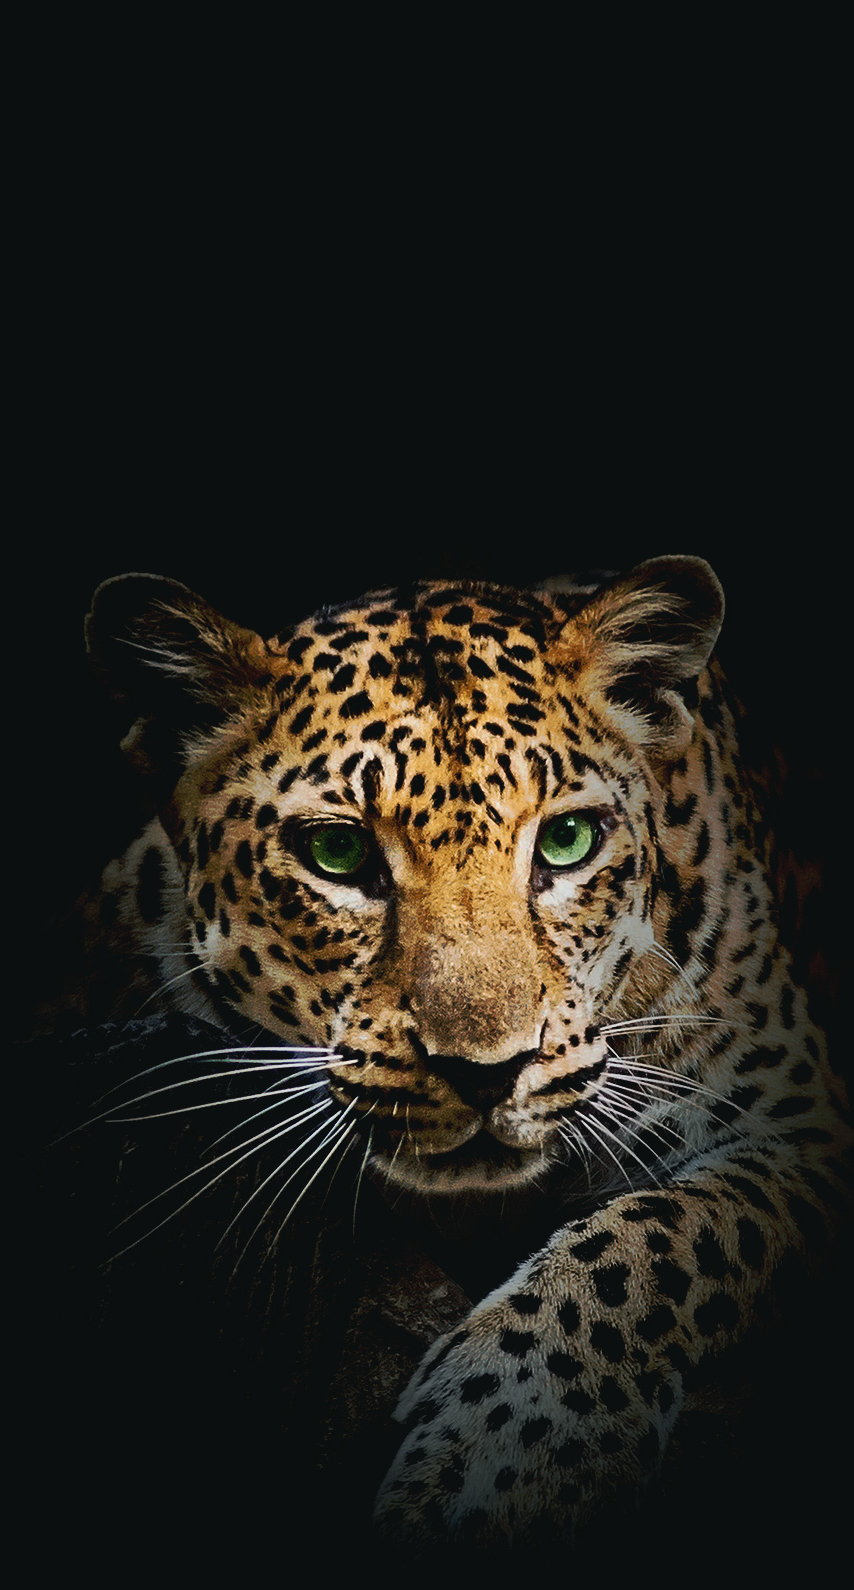 mammal, predator, hunter, staring, big, panthera, carnivore, hunt